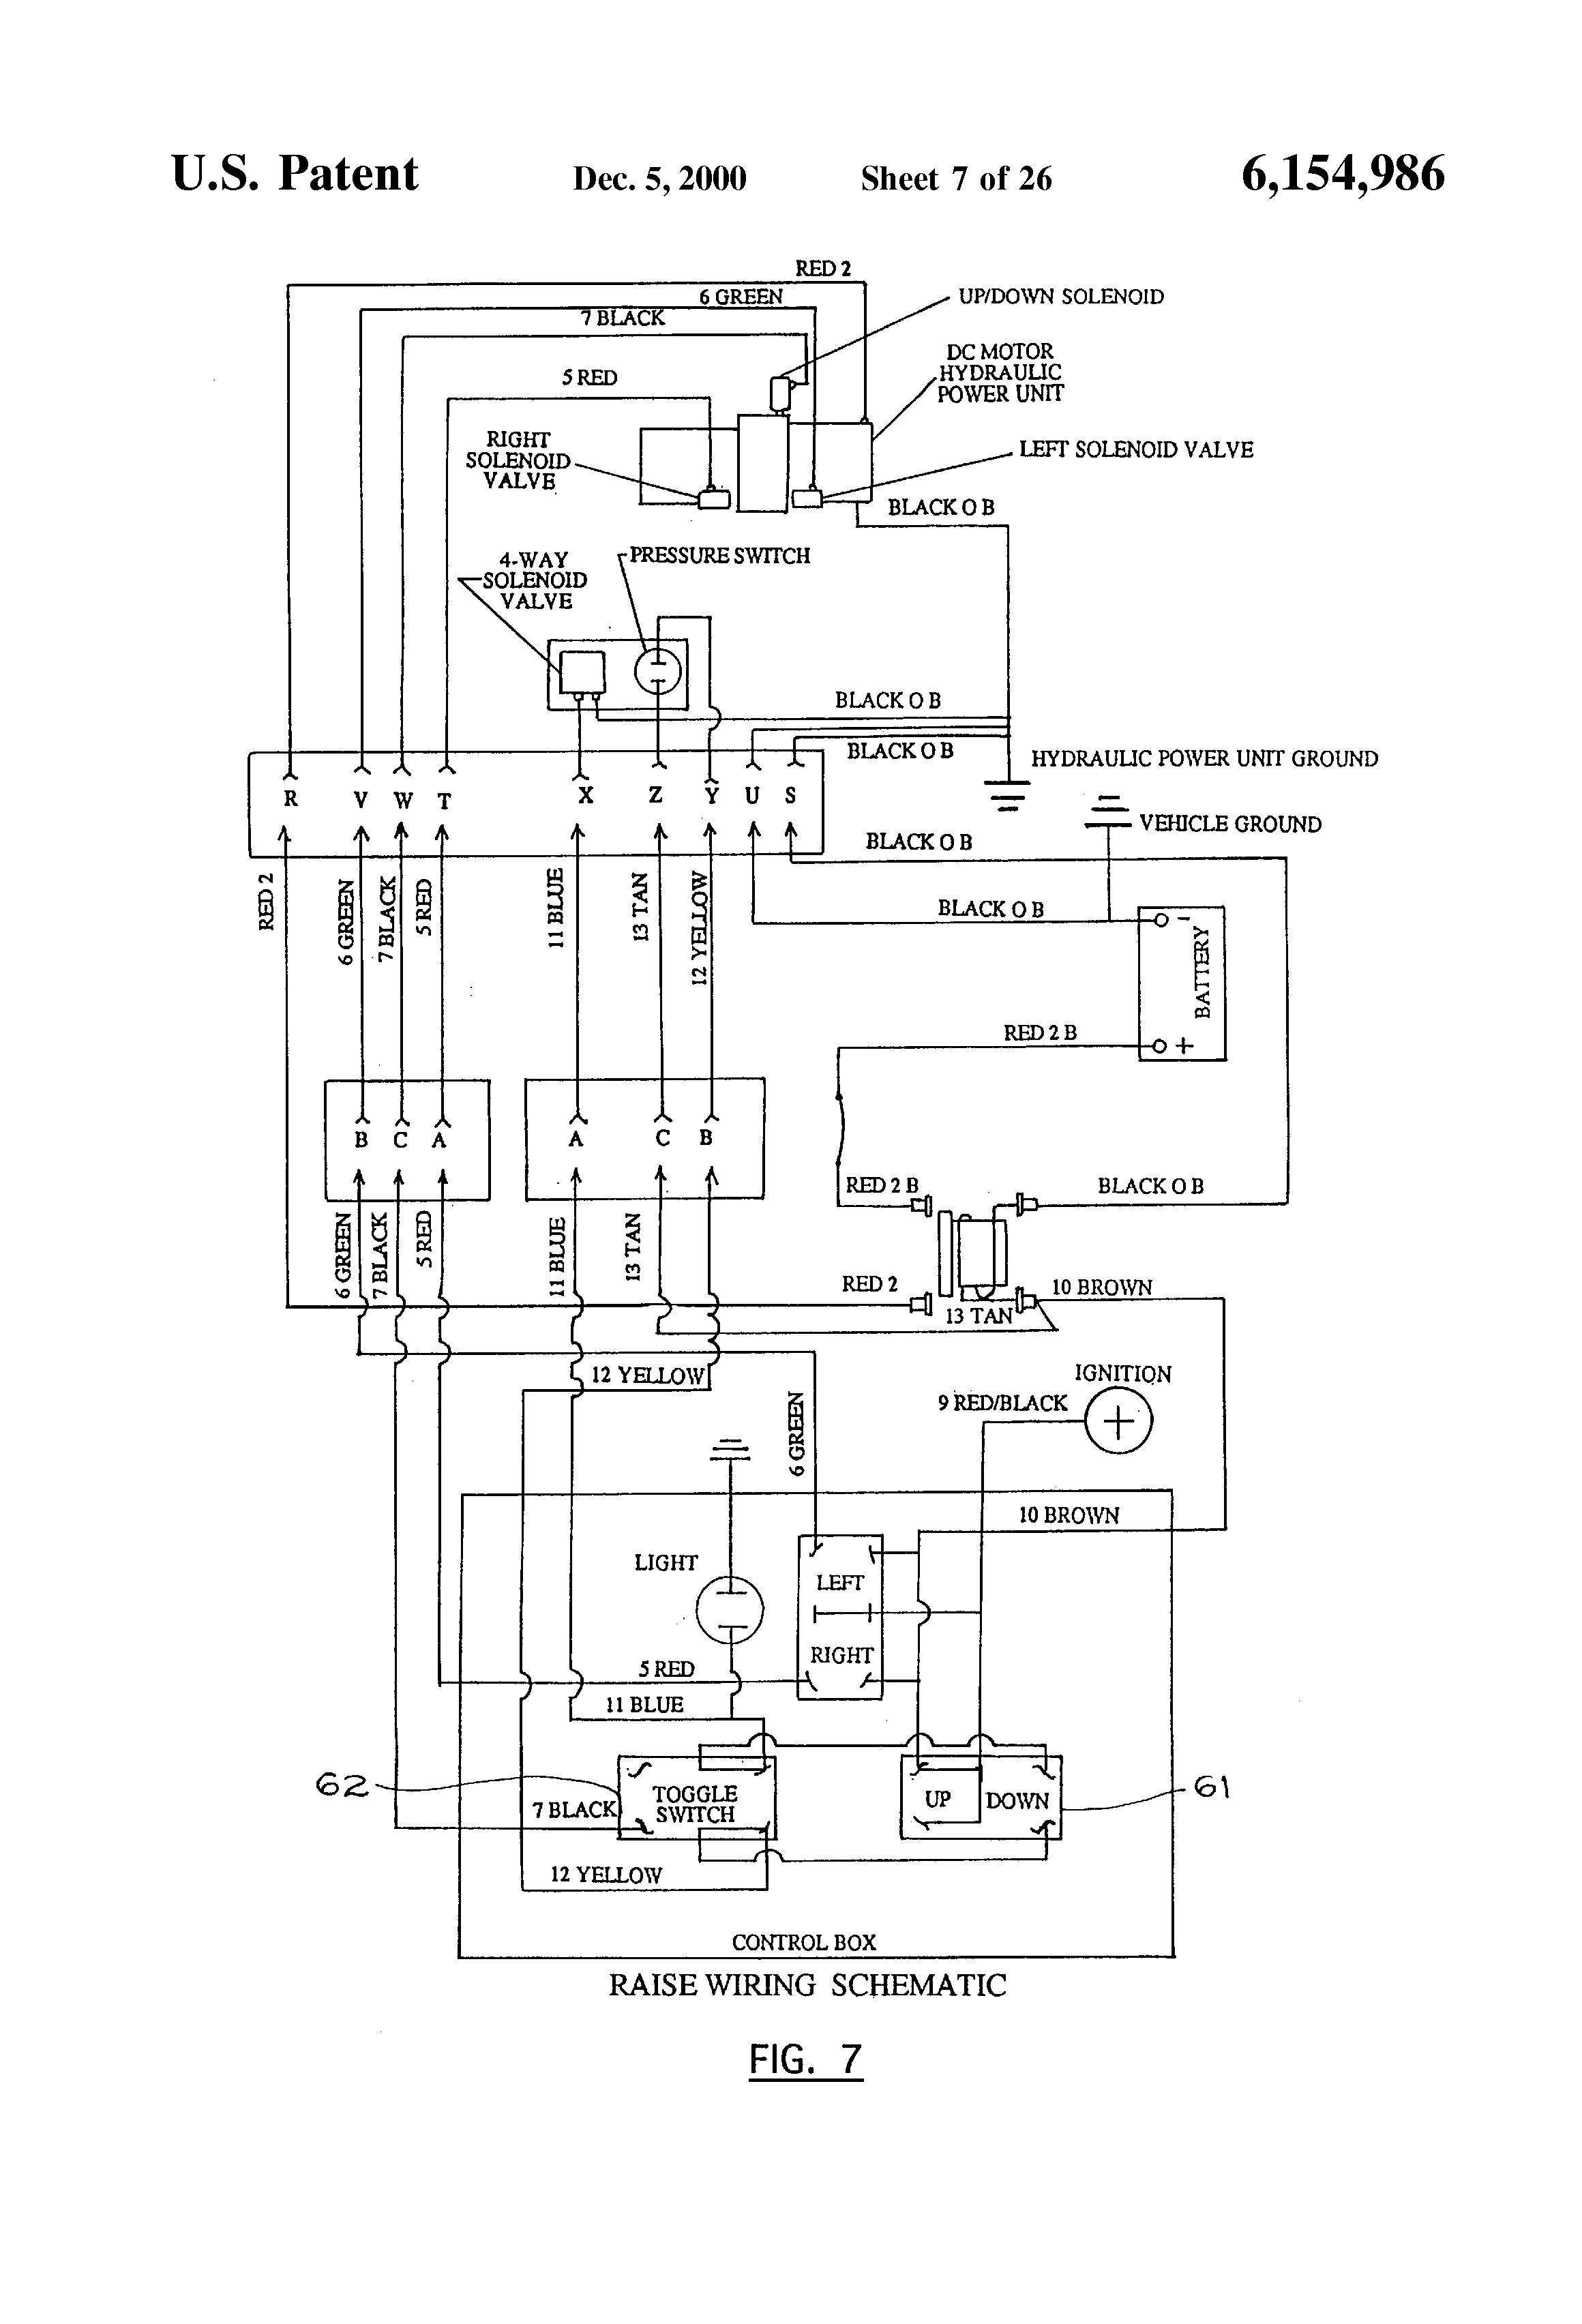 [DIAGRAM] Western Unimount Wiring Harness Diagram FULL